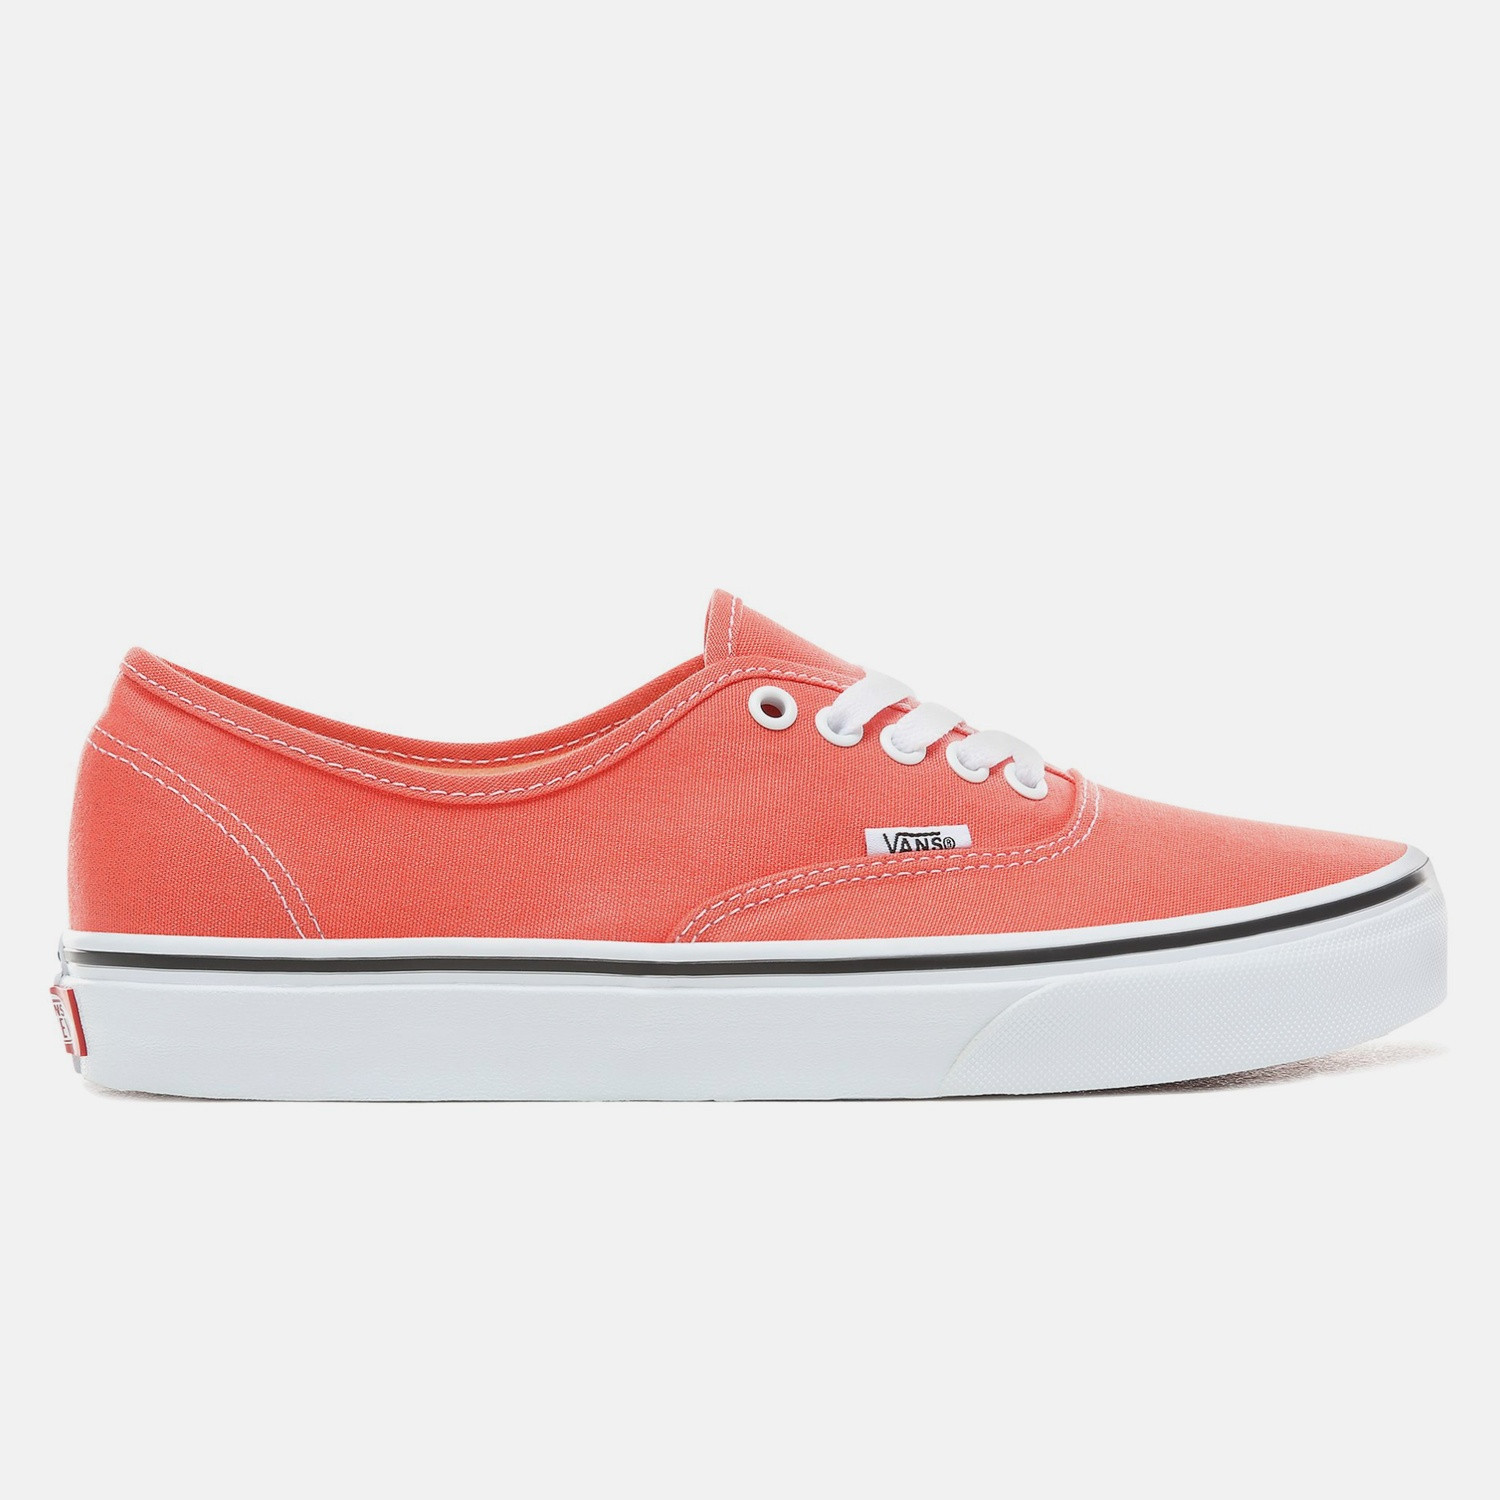 Vans Authentic Mens Shoes (9000026834_38161)